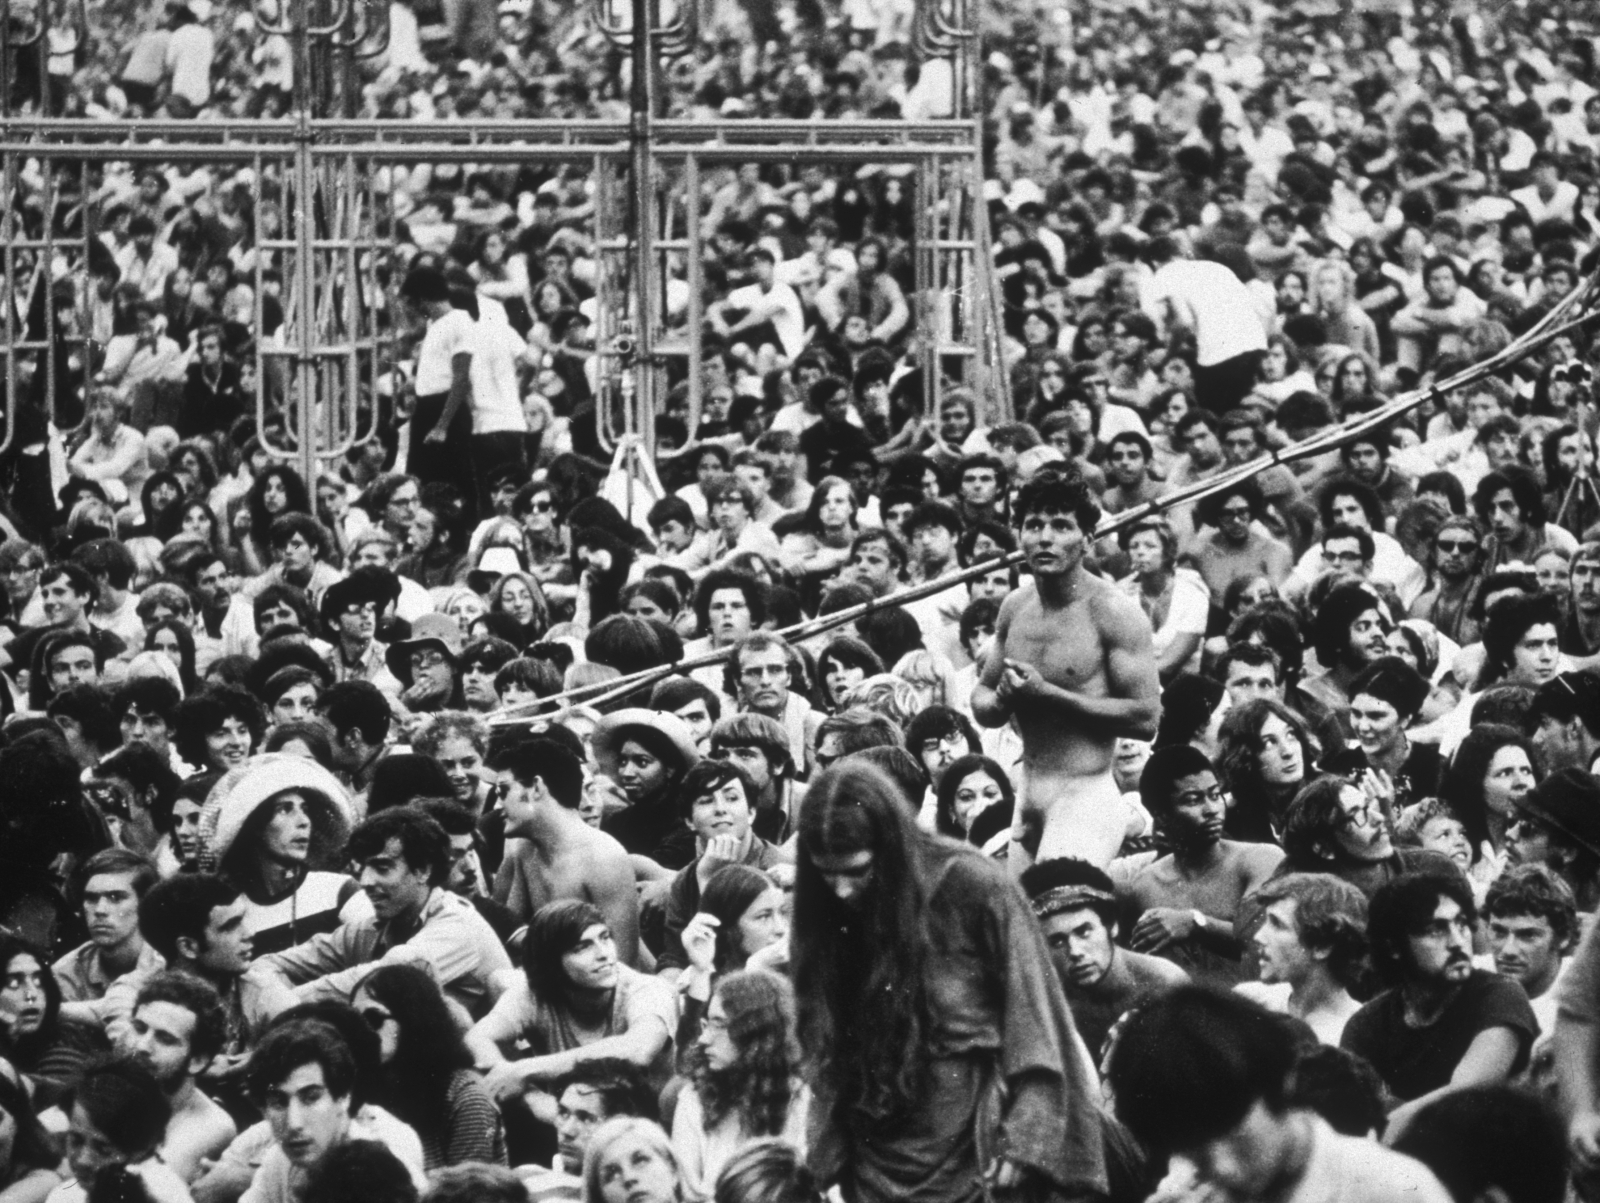 woodstock 1969